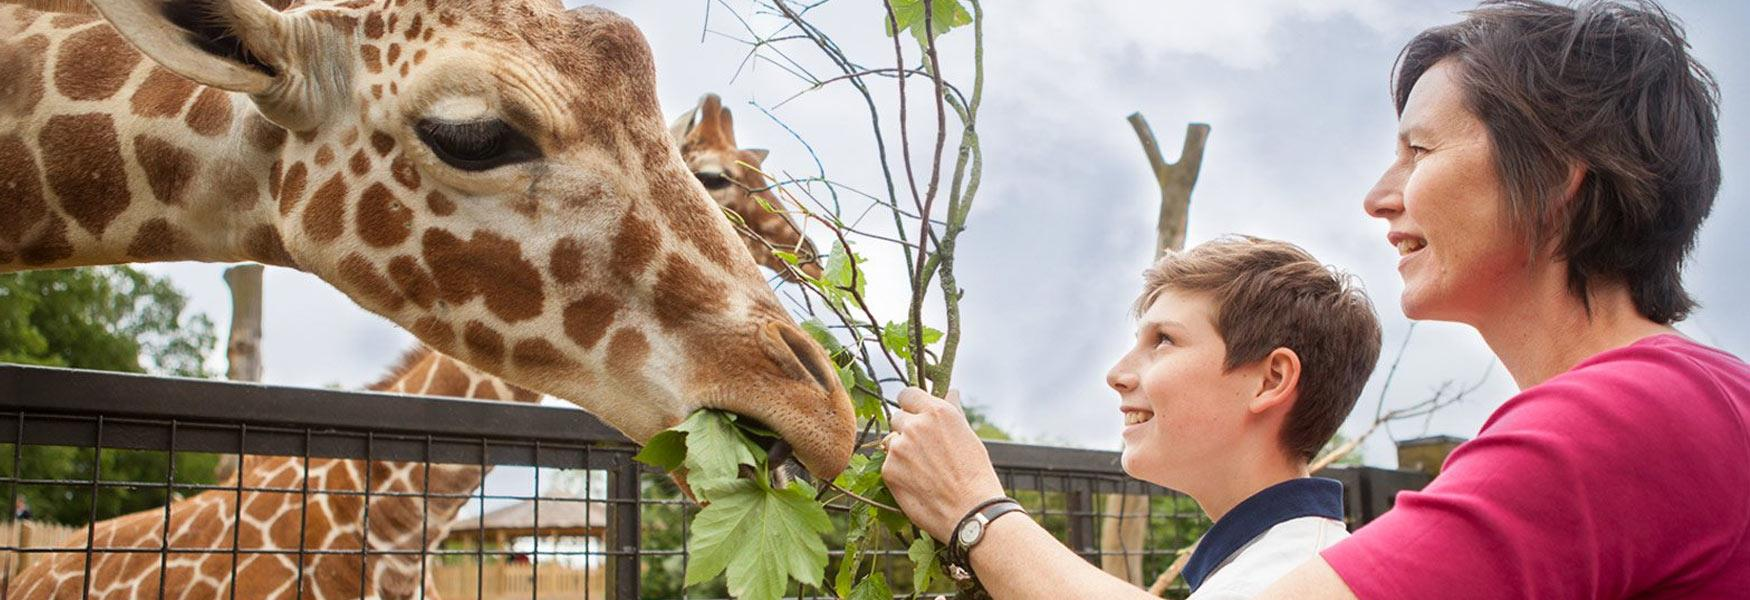 'Meet the Giraffes Experience, ZSL Whipsnade Zoo'